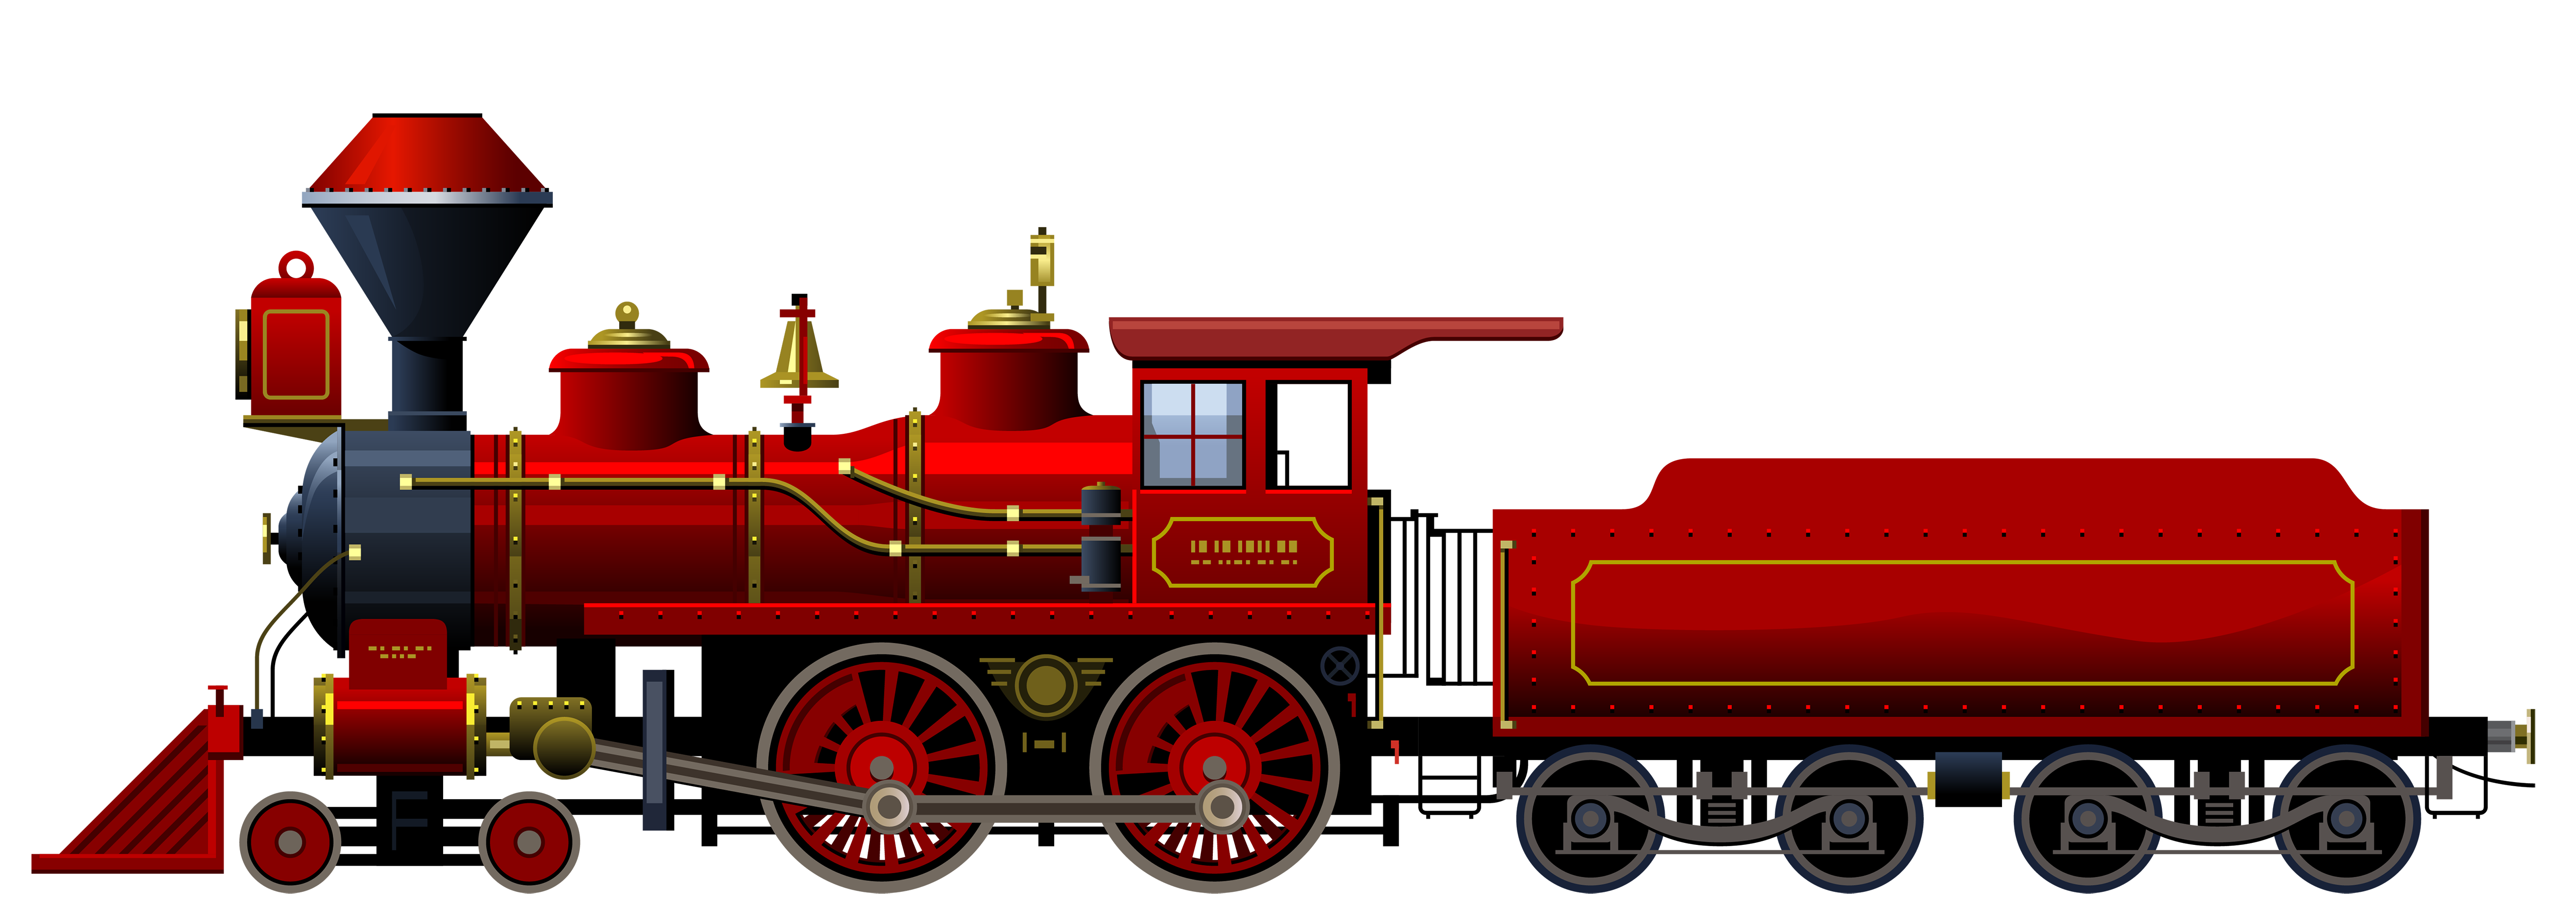 locomotive clipart red train pencil and color #16212